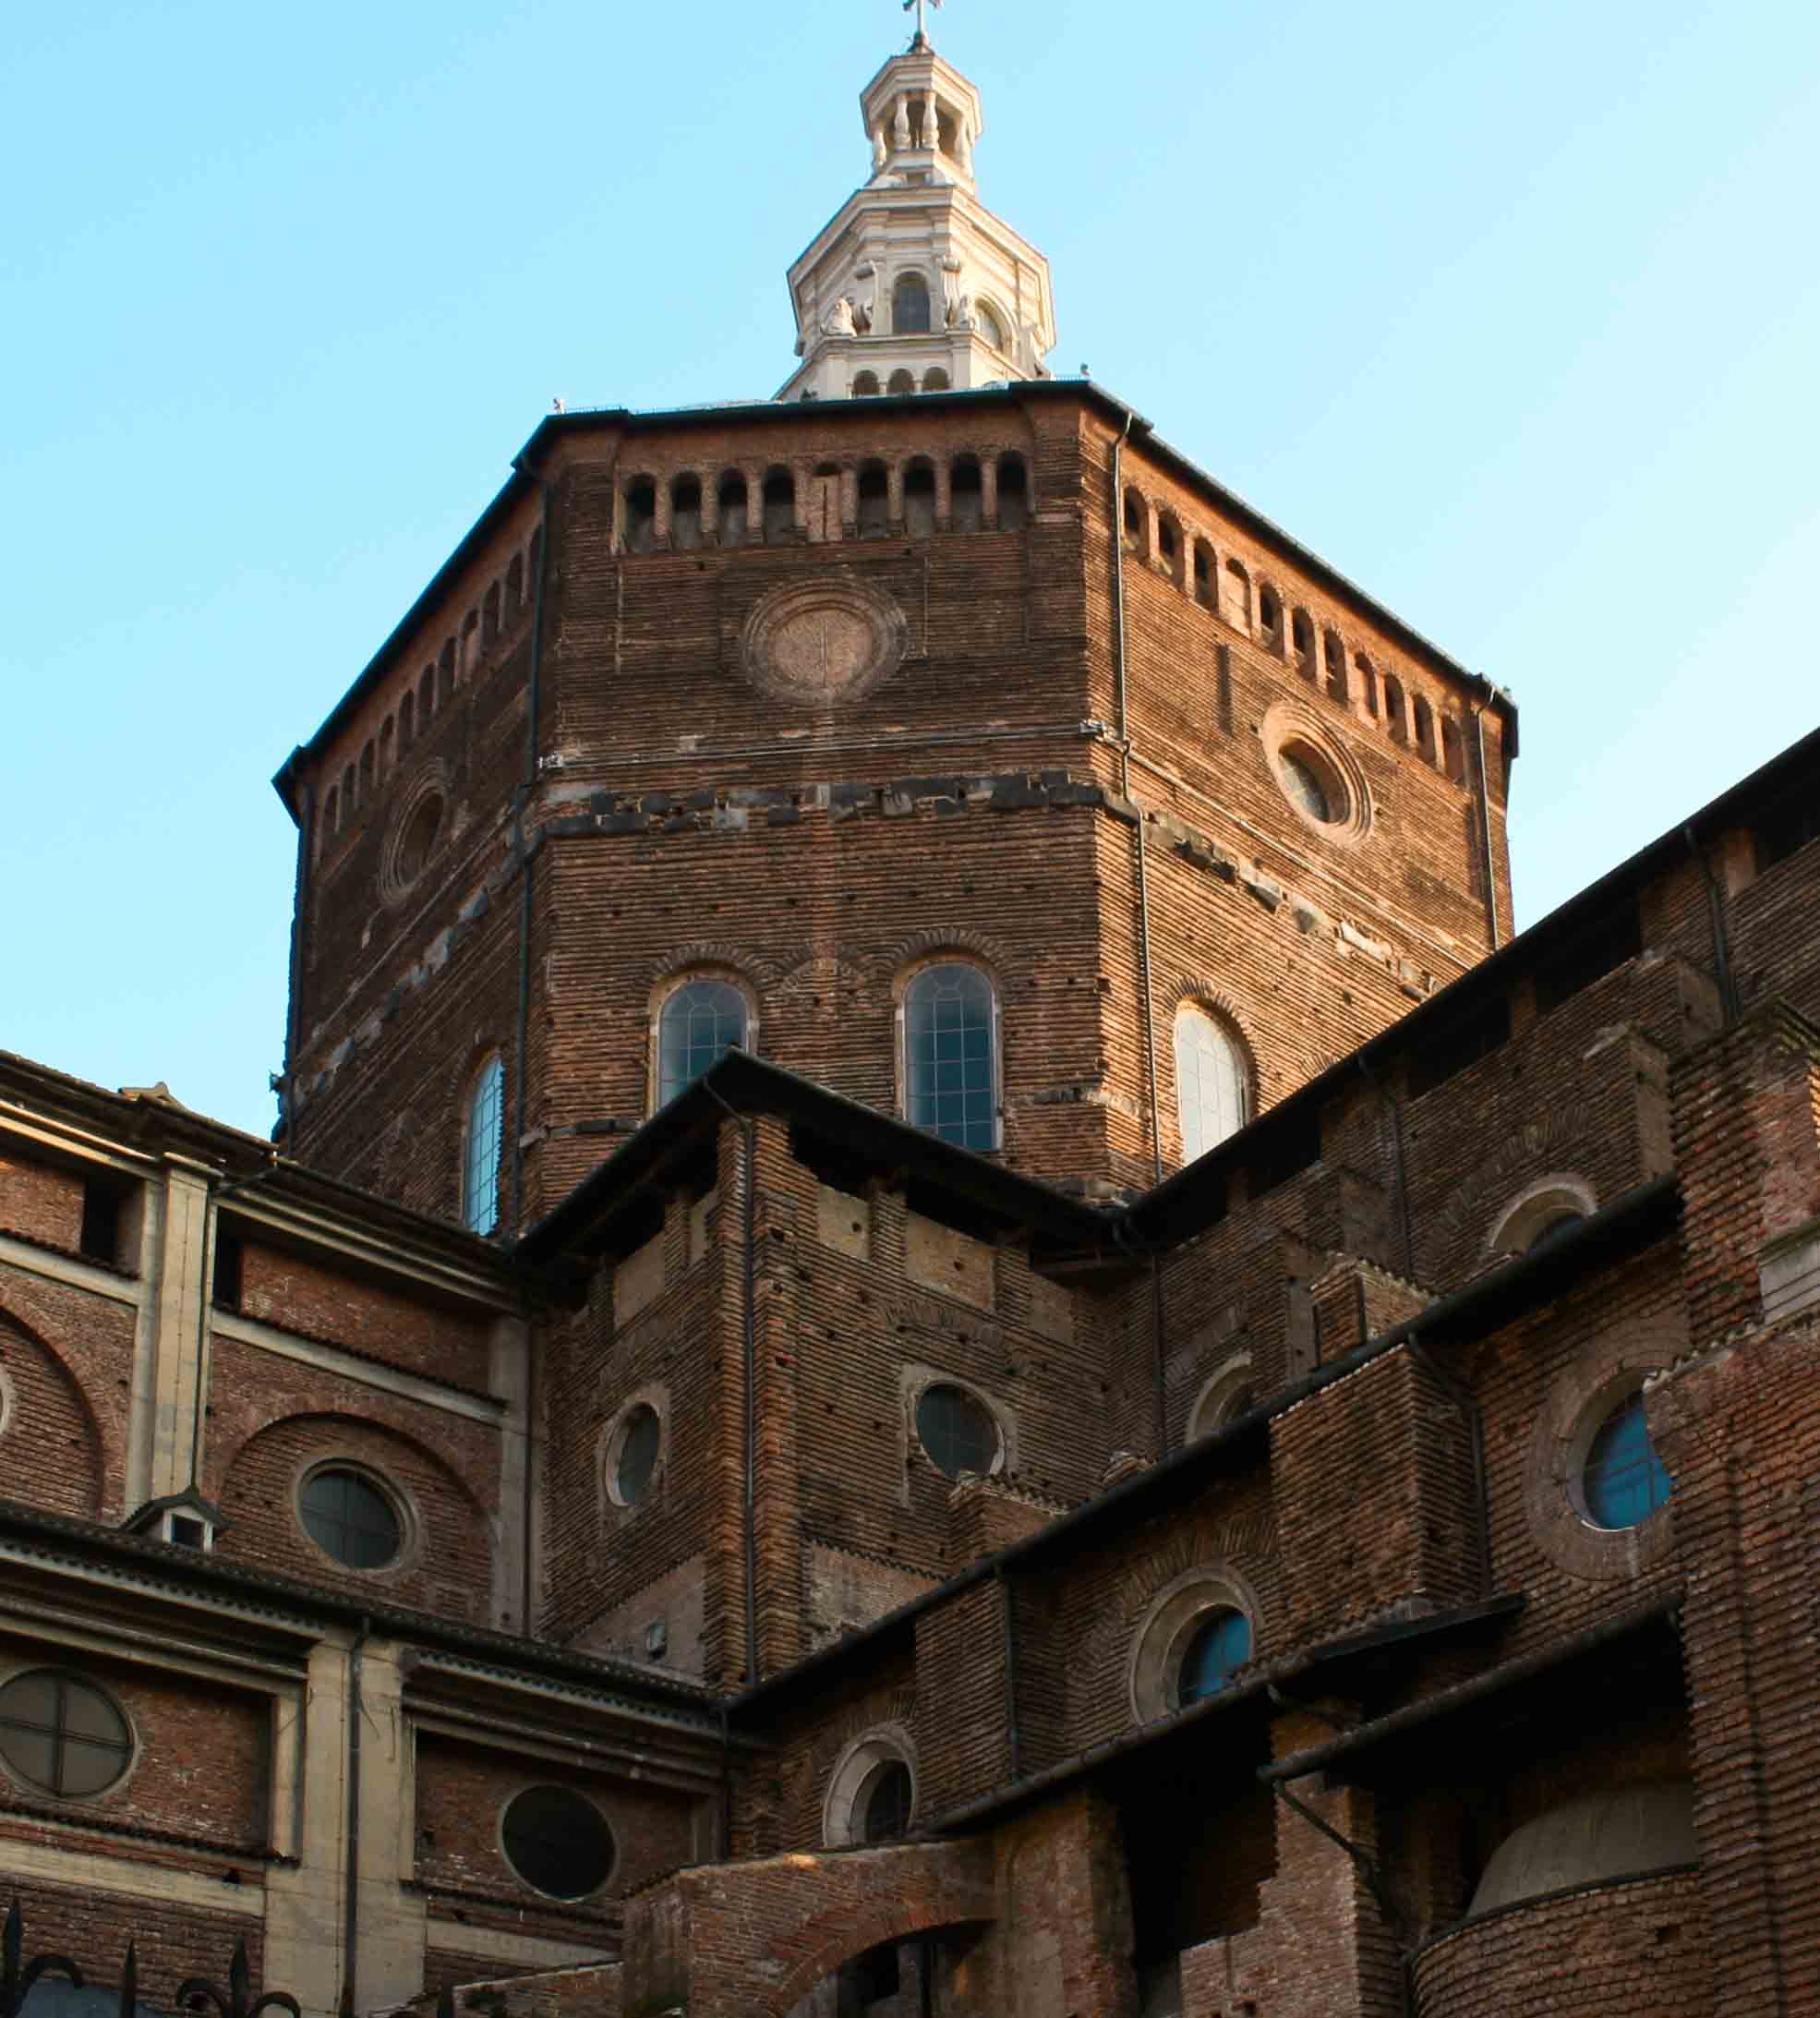 The cathedral of Pavia.